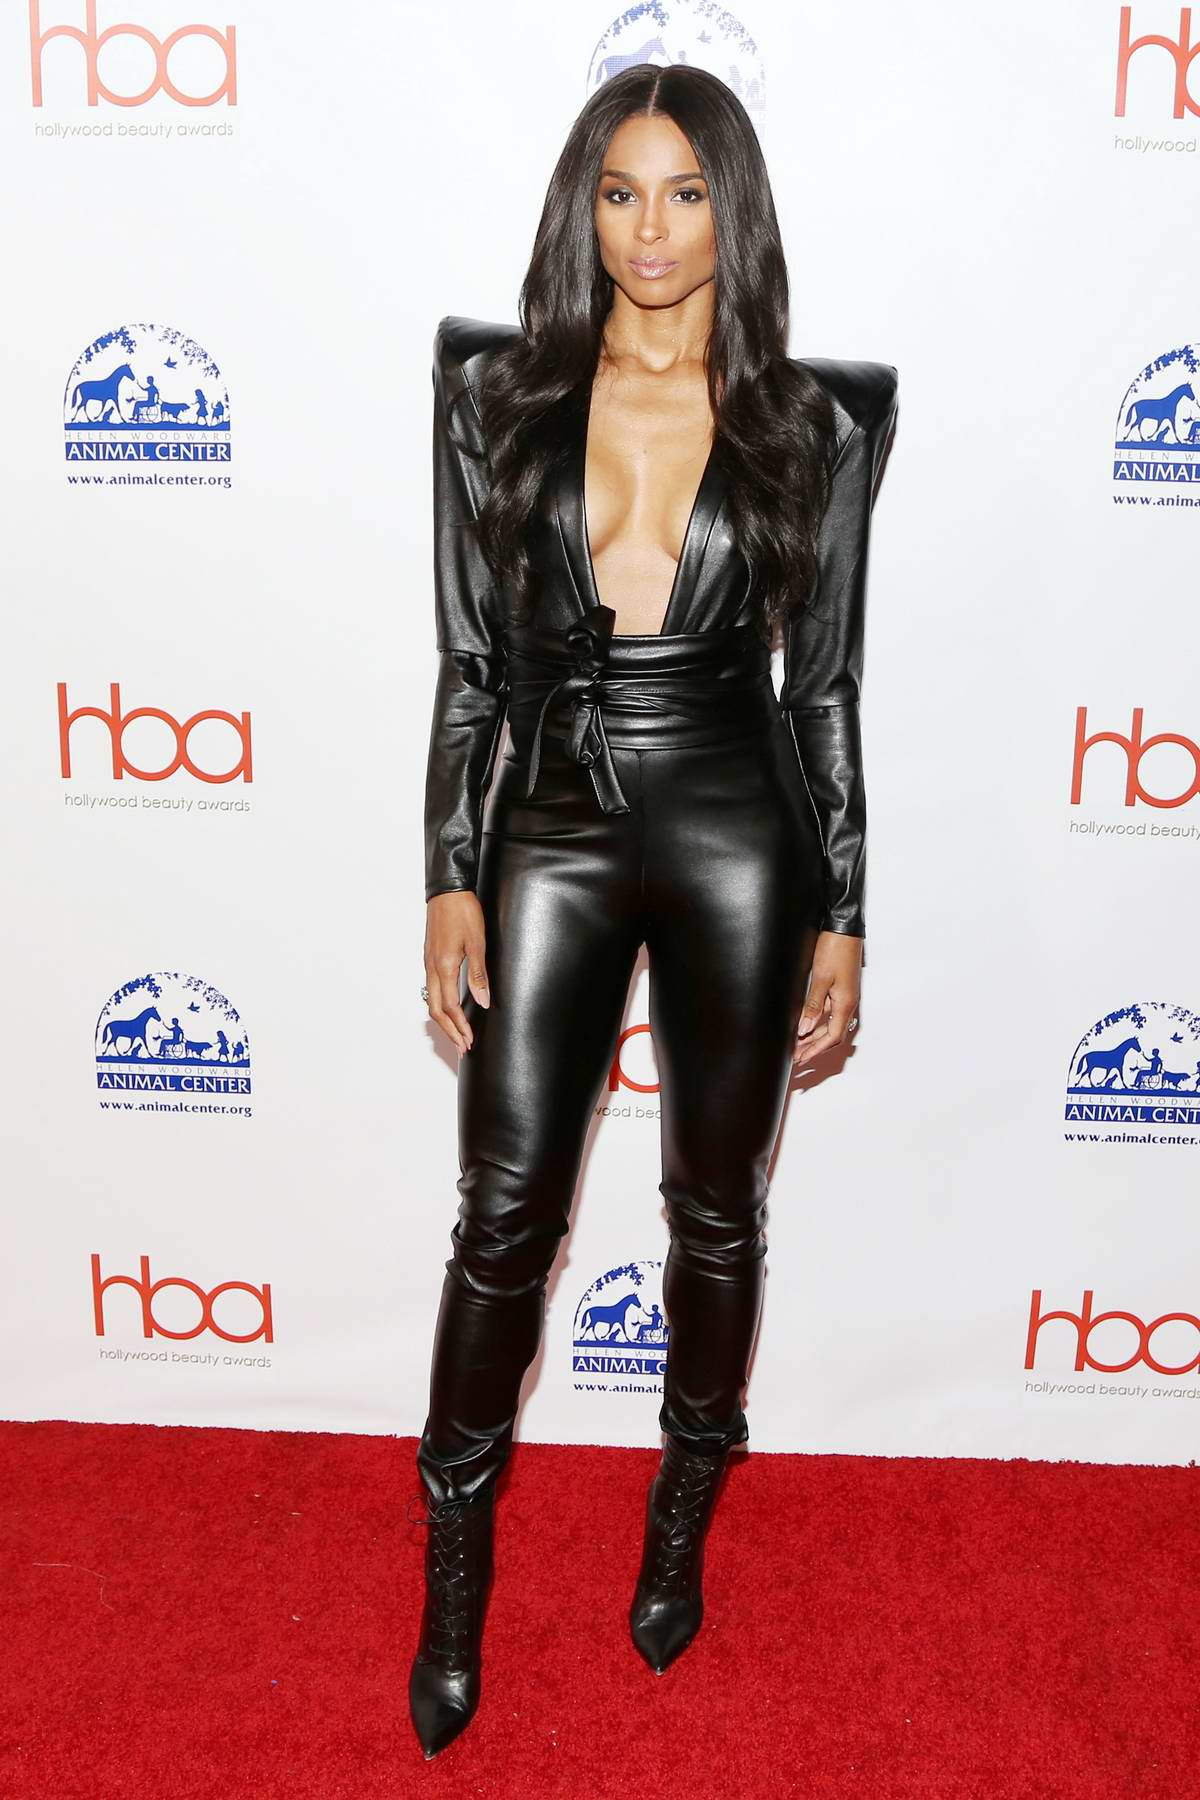 Ciara attends the 5th annual Hollywood Beauty Awards held at the Avalon in Hollywood, California